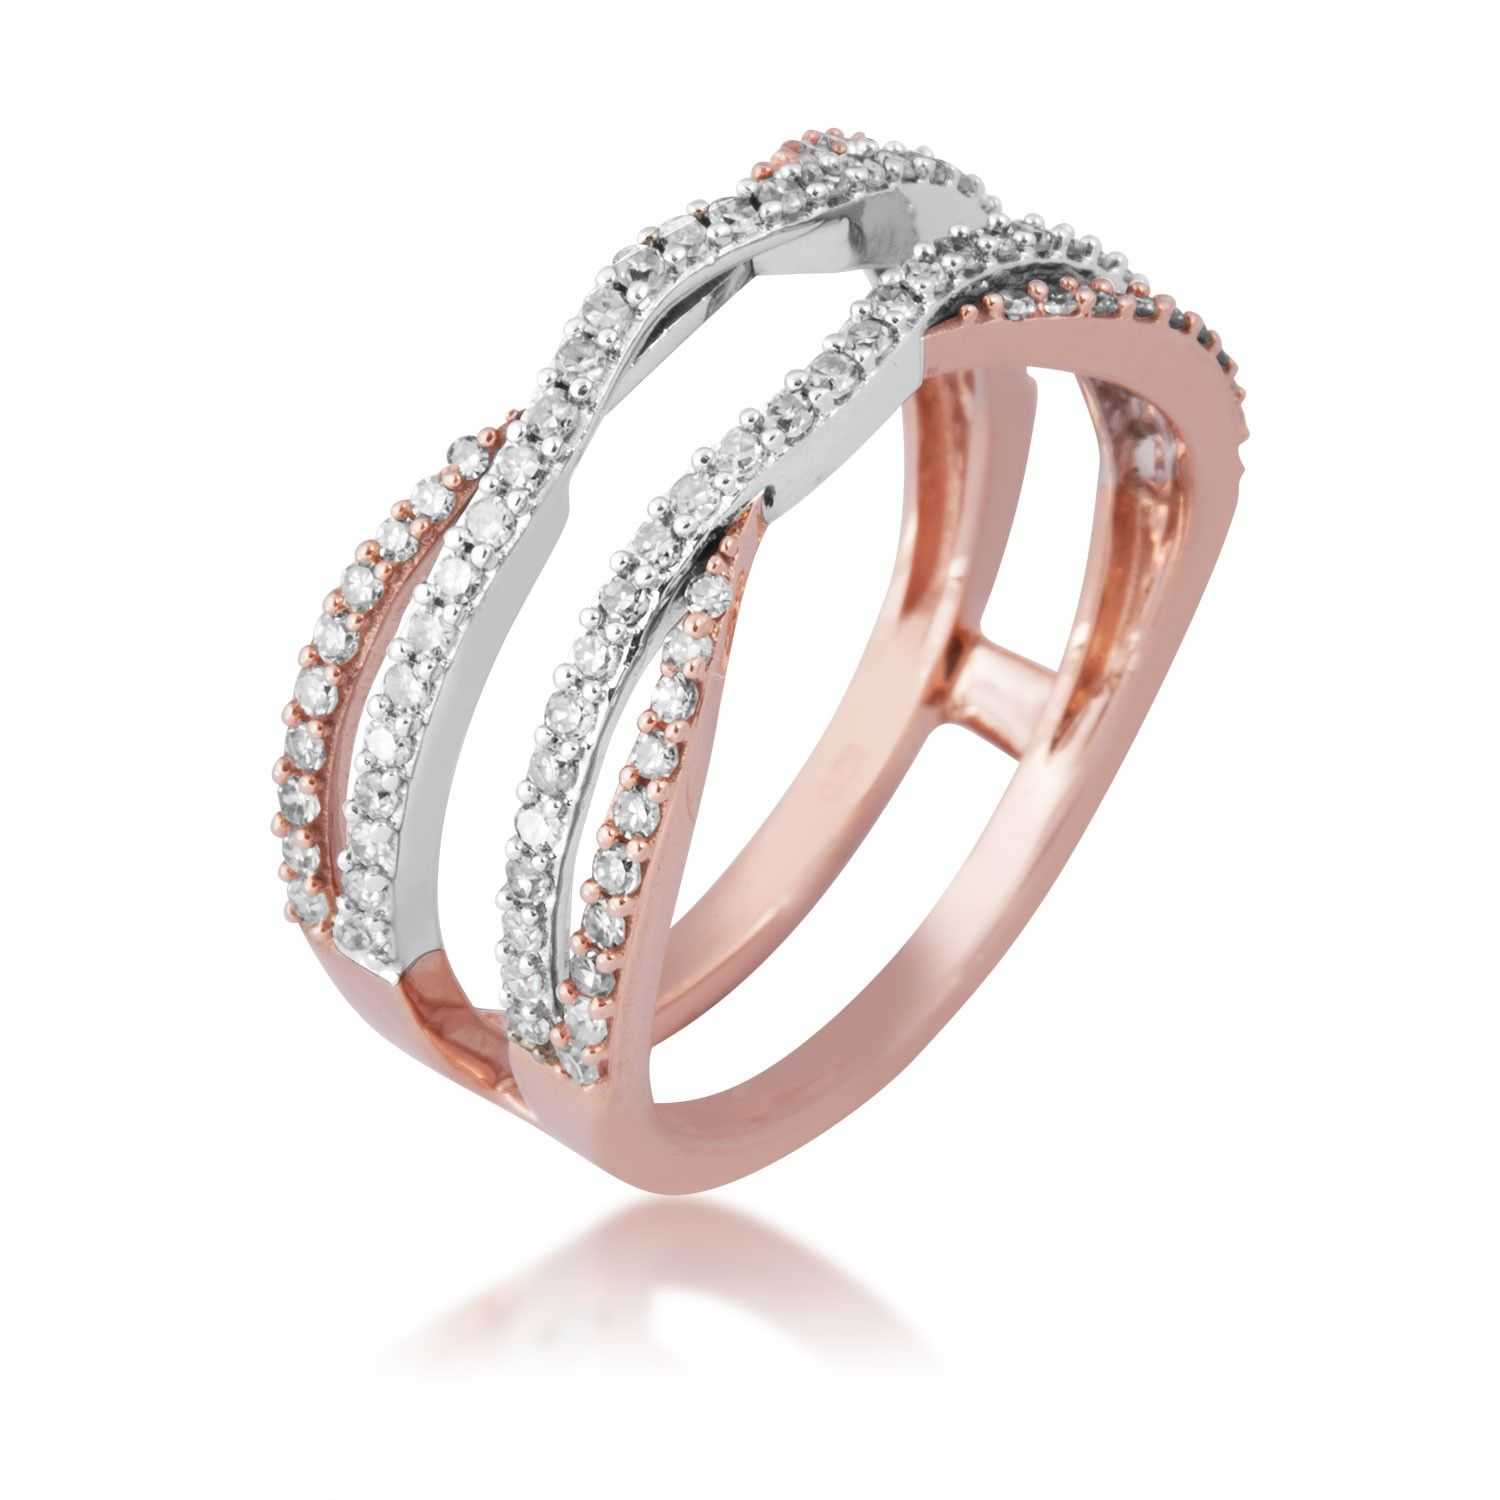 La s White Diamond Ring Enhancer with rose Gold would love the